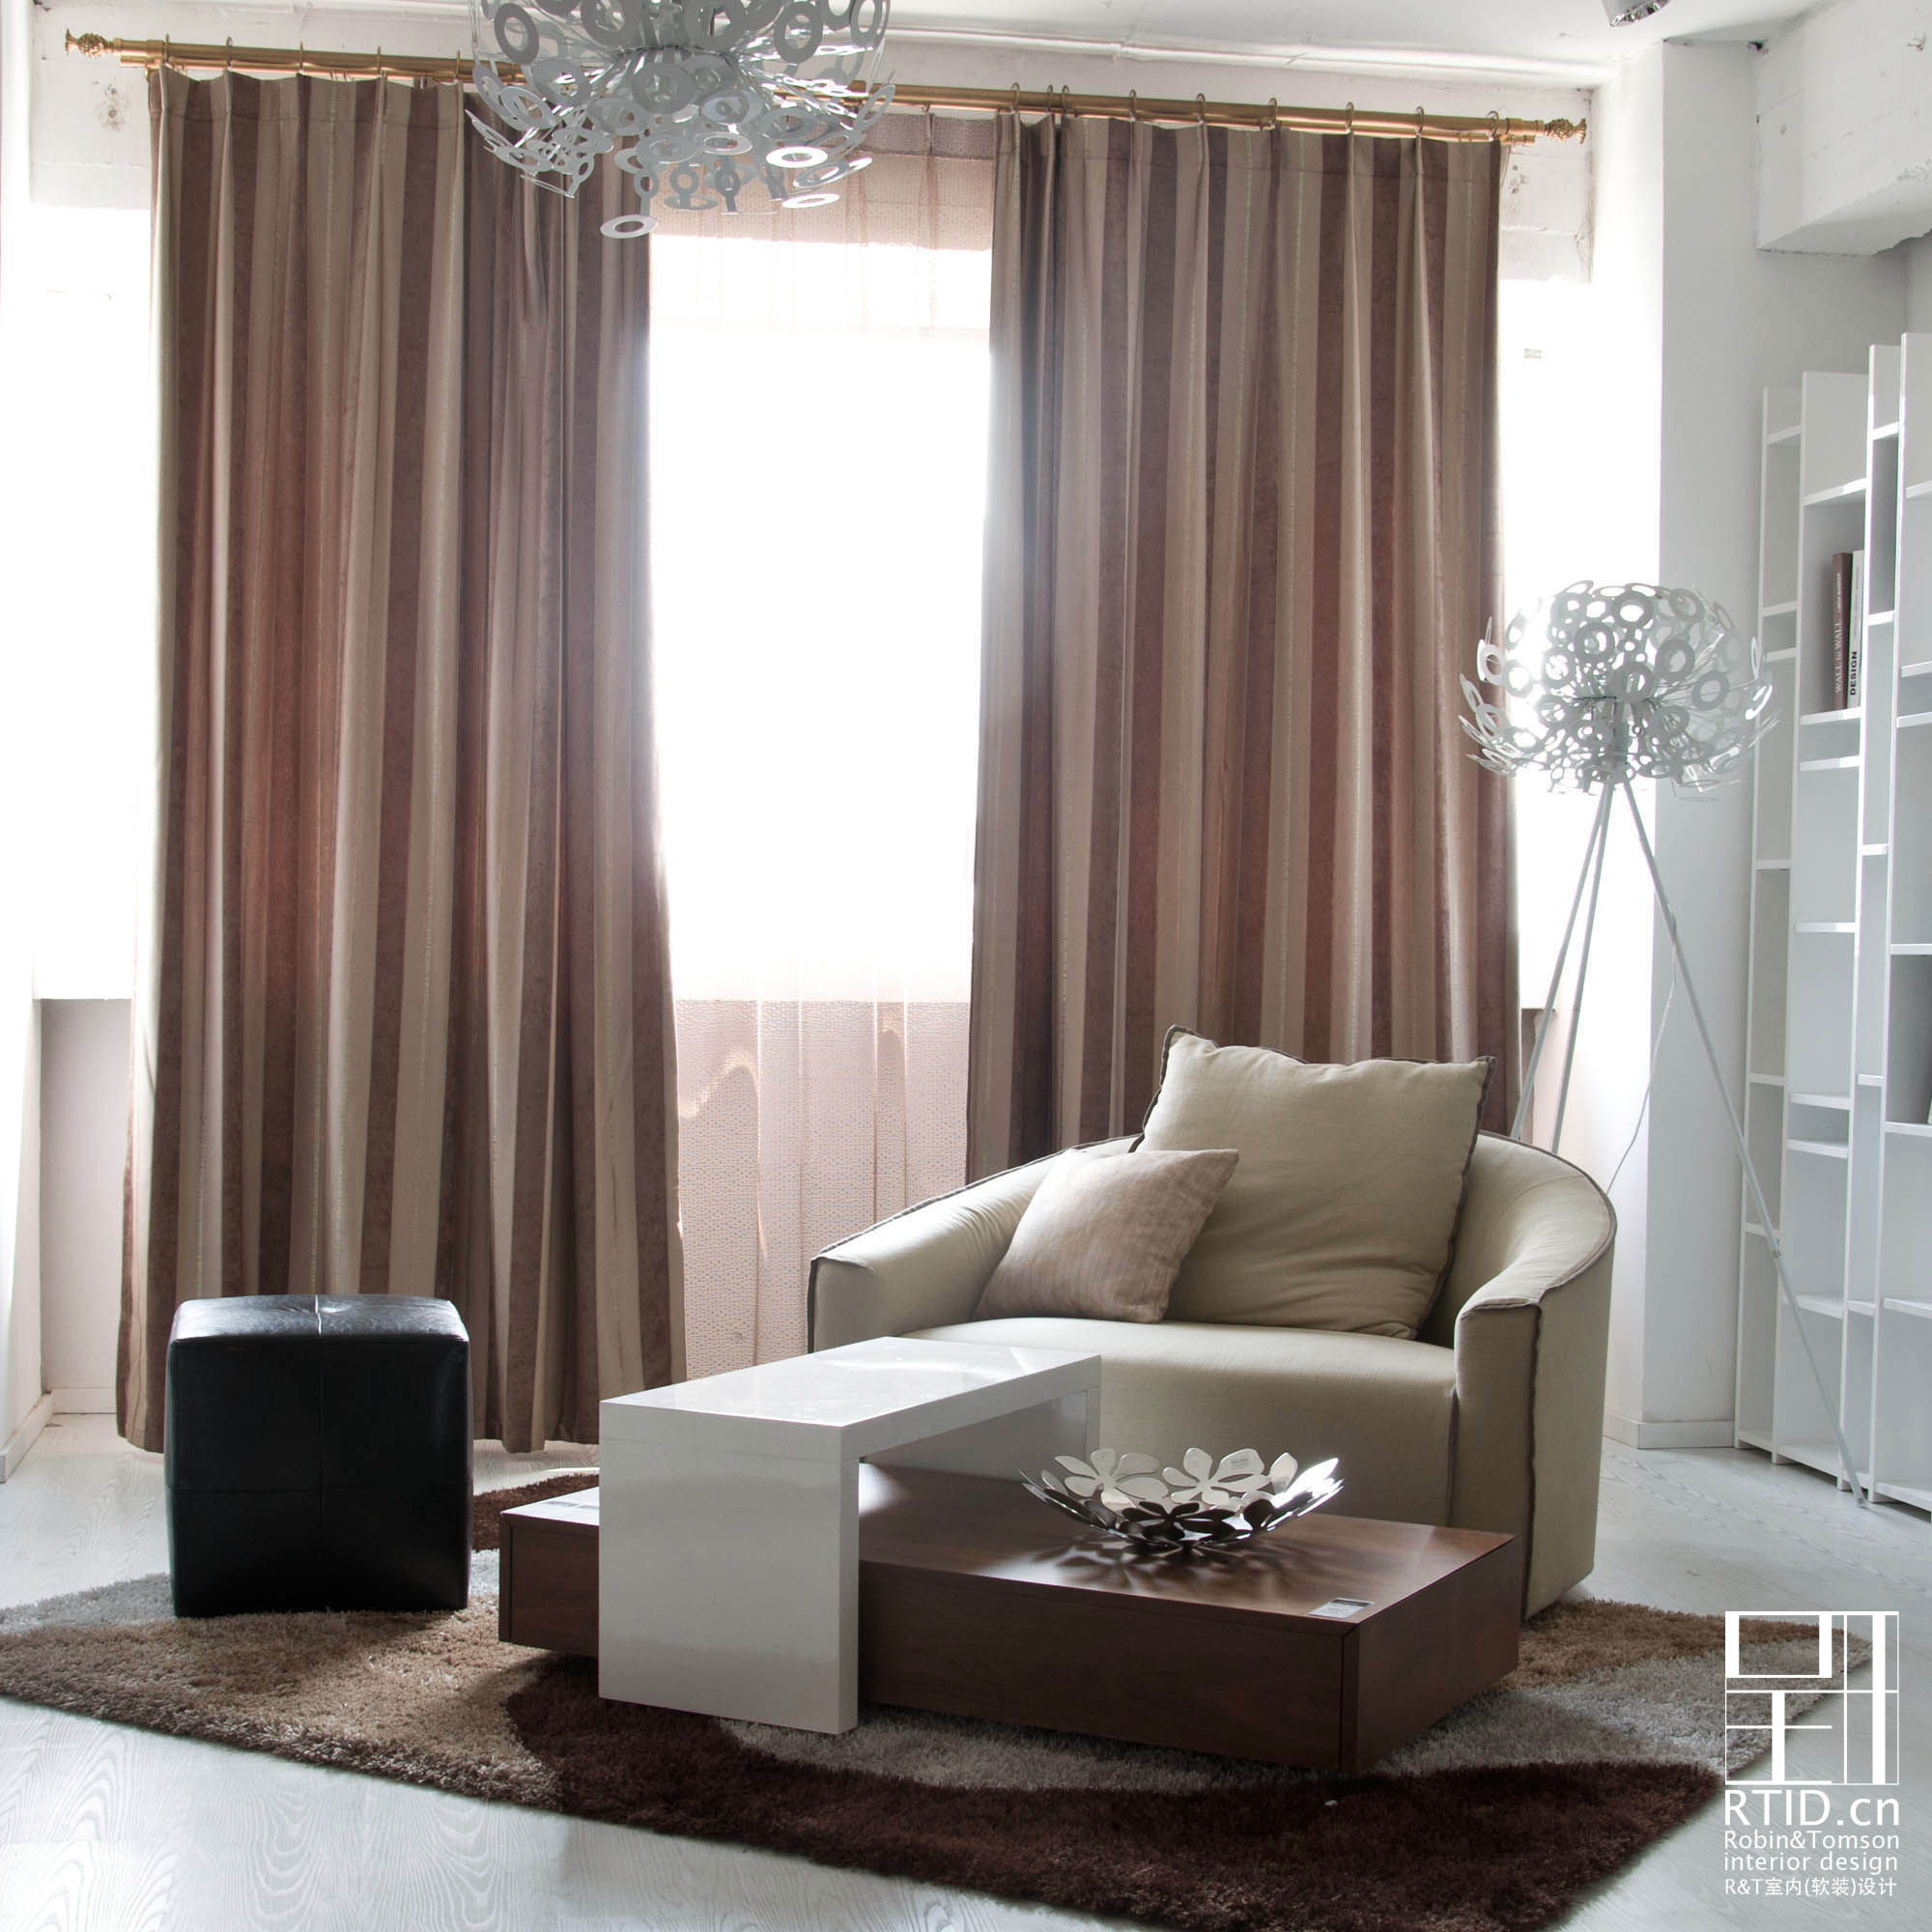 Ideas & Tips Horizontal Striped Curtains With Modern Design Sofa